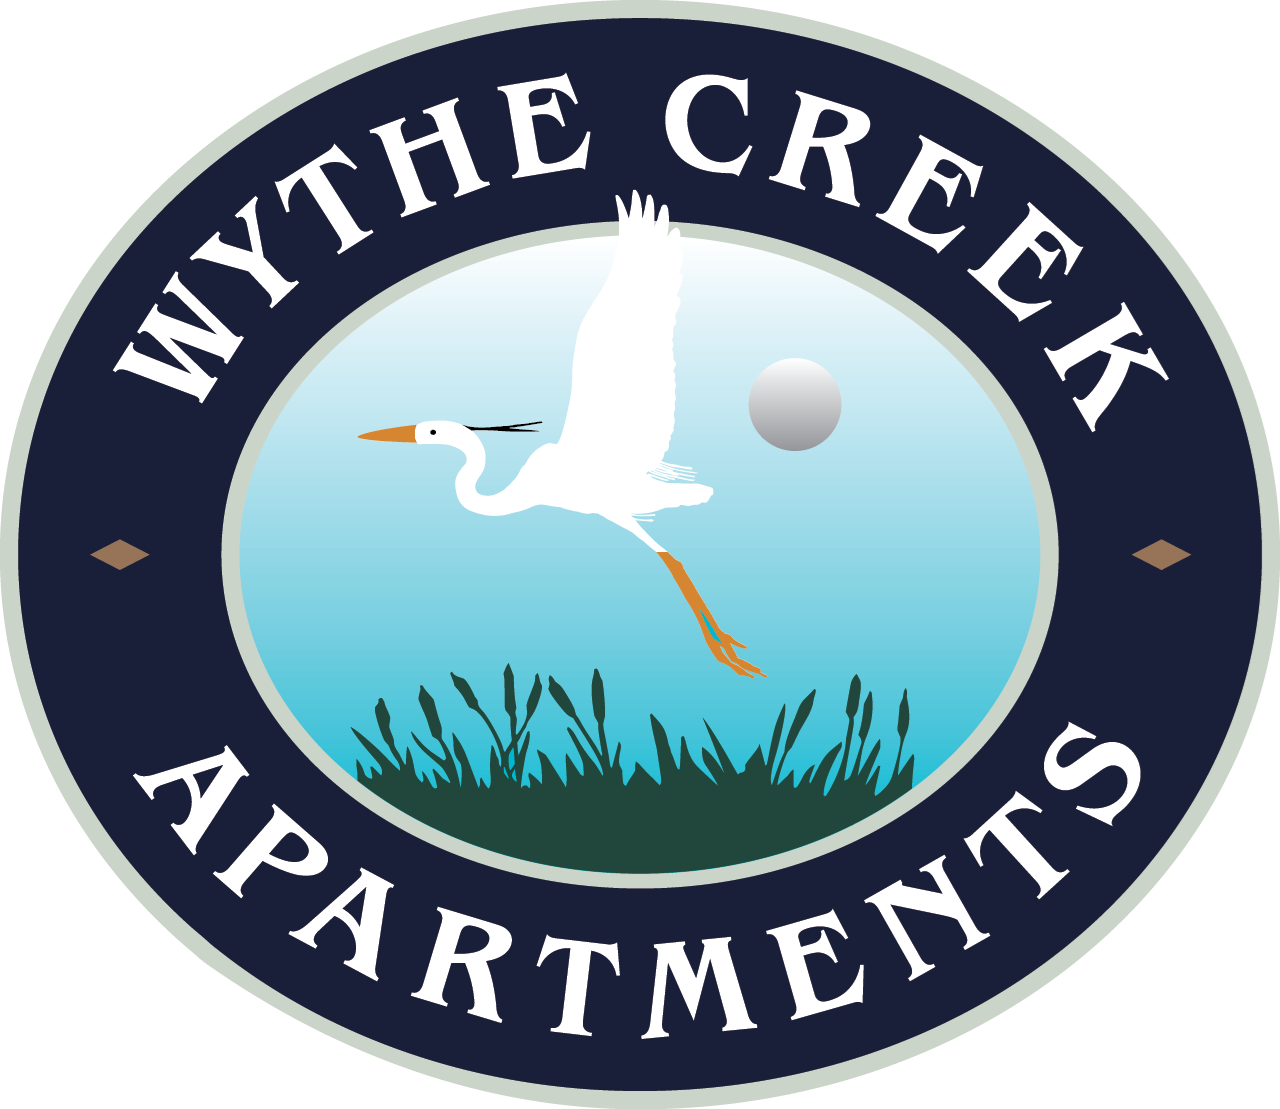 Wythe Creek apartments for rent in Poquoson VA